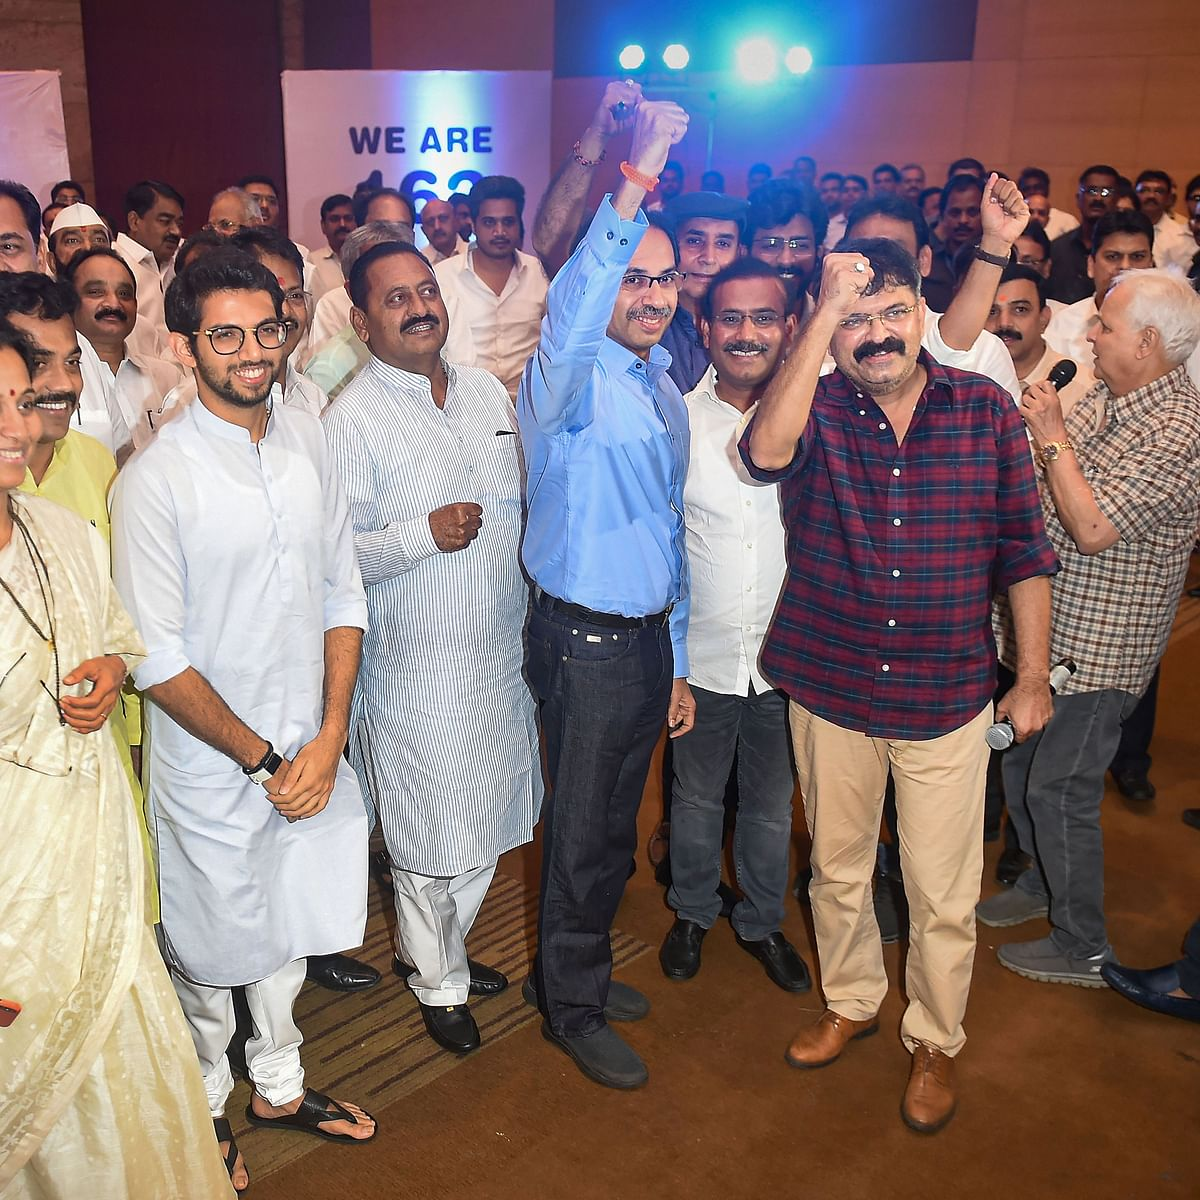 Sena chief Uddhav Thackeray  and NCP MLA Jitendra Awhad raise their fists as a sign of unity at the parade of NCP-Cong-Sena MLAs in Mumbai on Monday. NCP's Supriya Sule and Congress' Ashok Chavan are also in the frame.